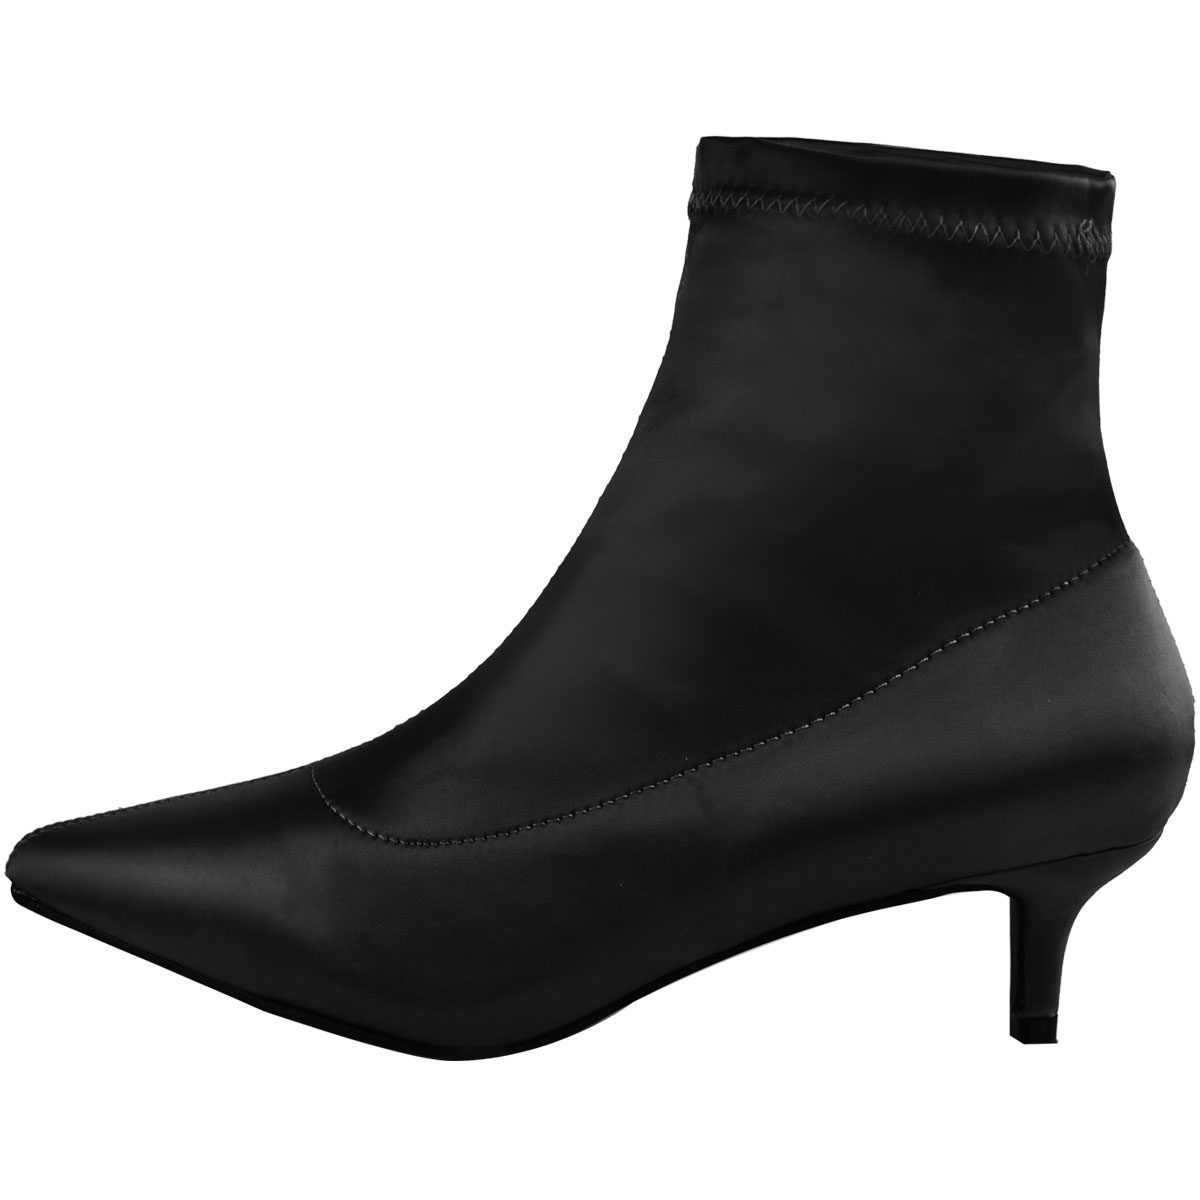 Ladies Womens Low Kitten Heel Ankle Boots Stretch Satin Pointed Toe Shoes Size